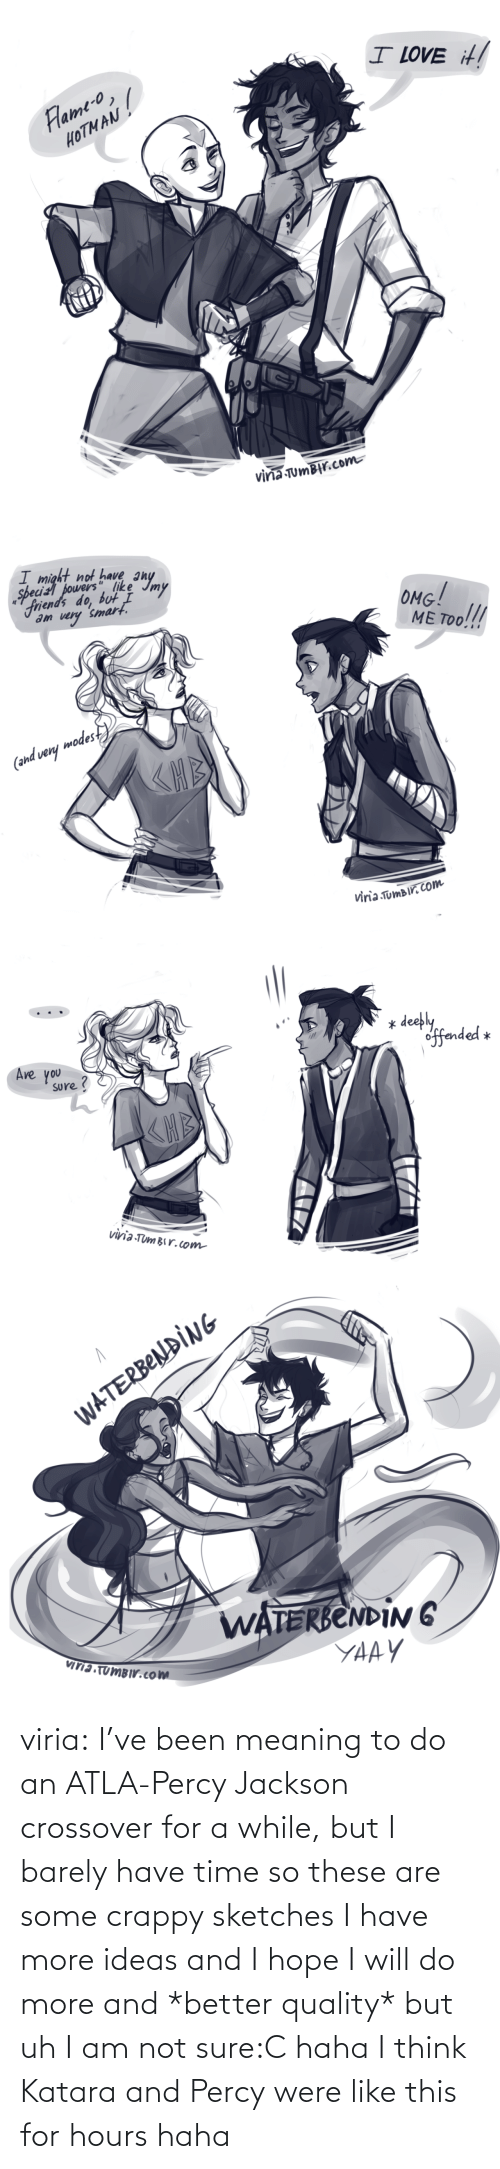 I Will: viria:  I've been meaning to do an ATLA-Percy Jackson crossover for a while, but I barely have time so these are some crappy sketches I have more ideas and I hope I will do more and *better quality* but uh I am not sure:C haha I think Katara and Percy were like this for hours haha